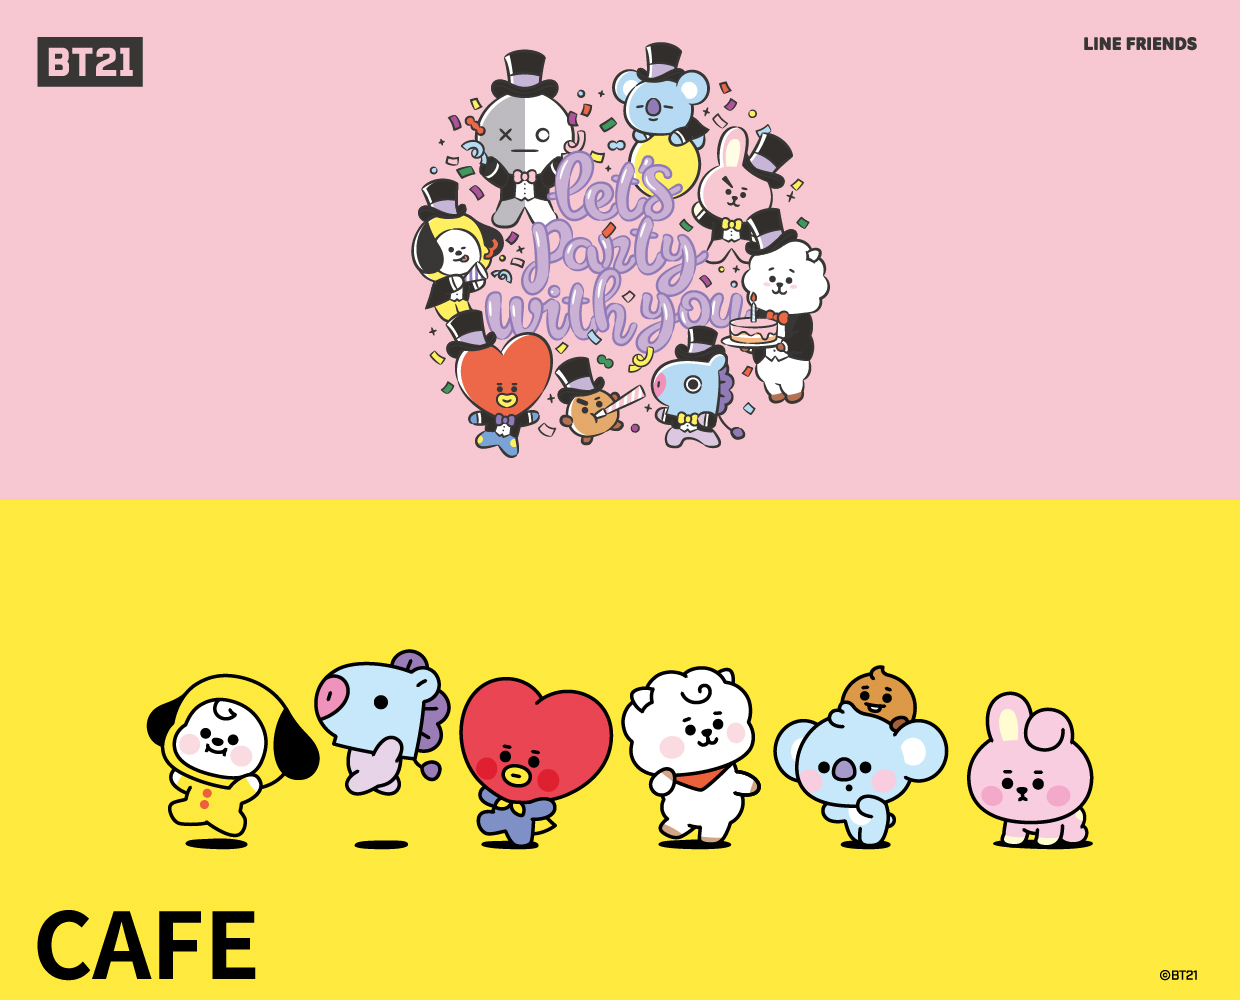 bt21cafe_web01_top%e3%83%8f%e3%82%99%e3%83%8a%e3%83%bc-3-2